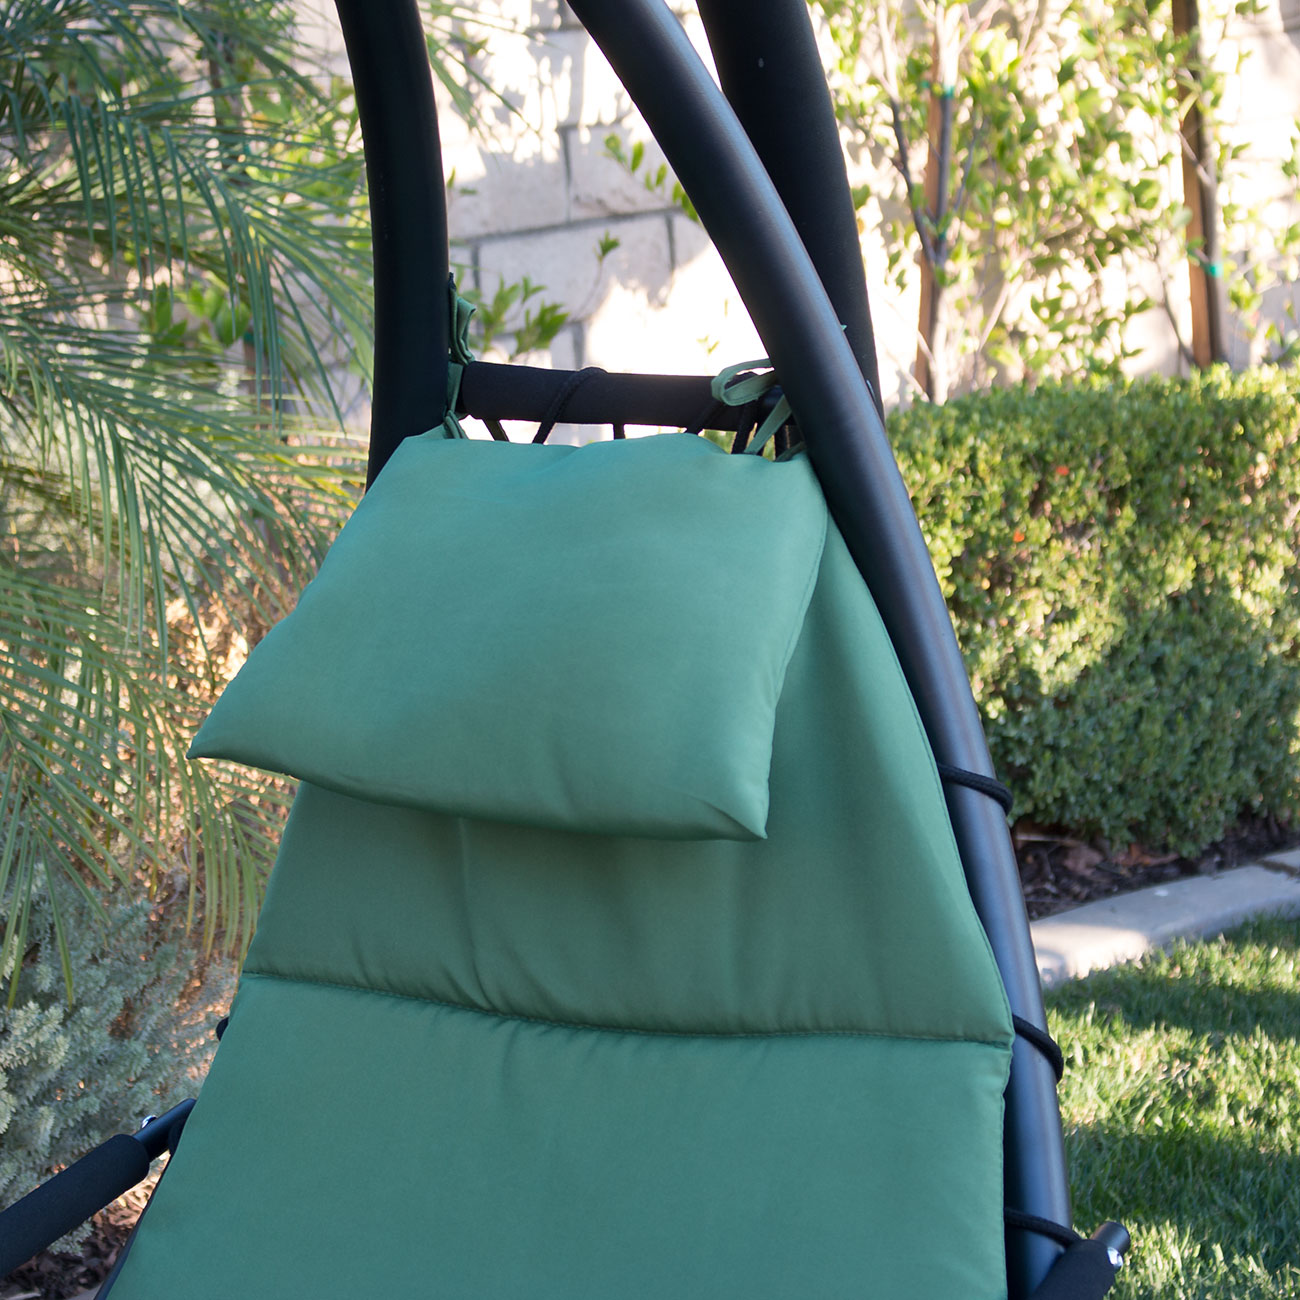 Hanging Chaise Lounge Chair Hammock Swing Canopy Glider Outdoor Patio Furniture